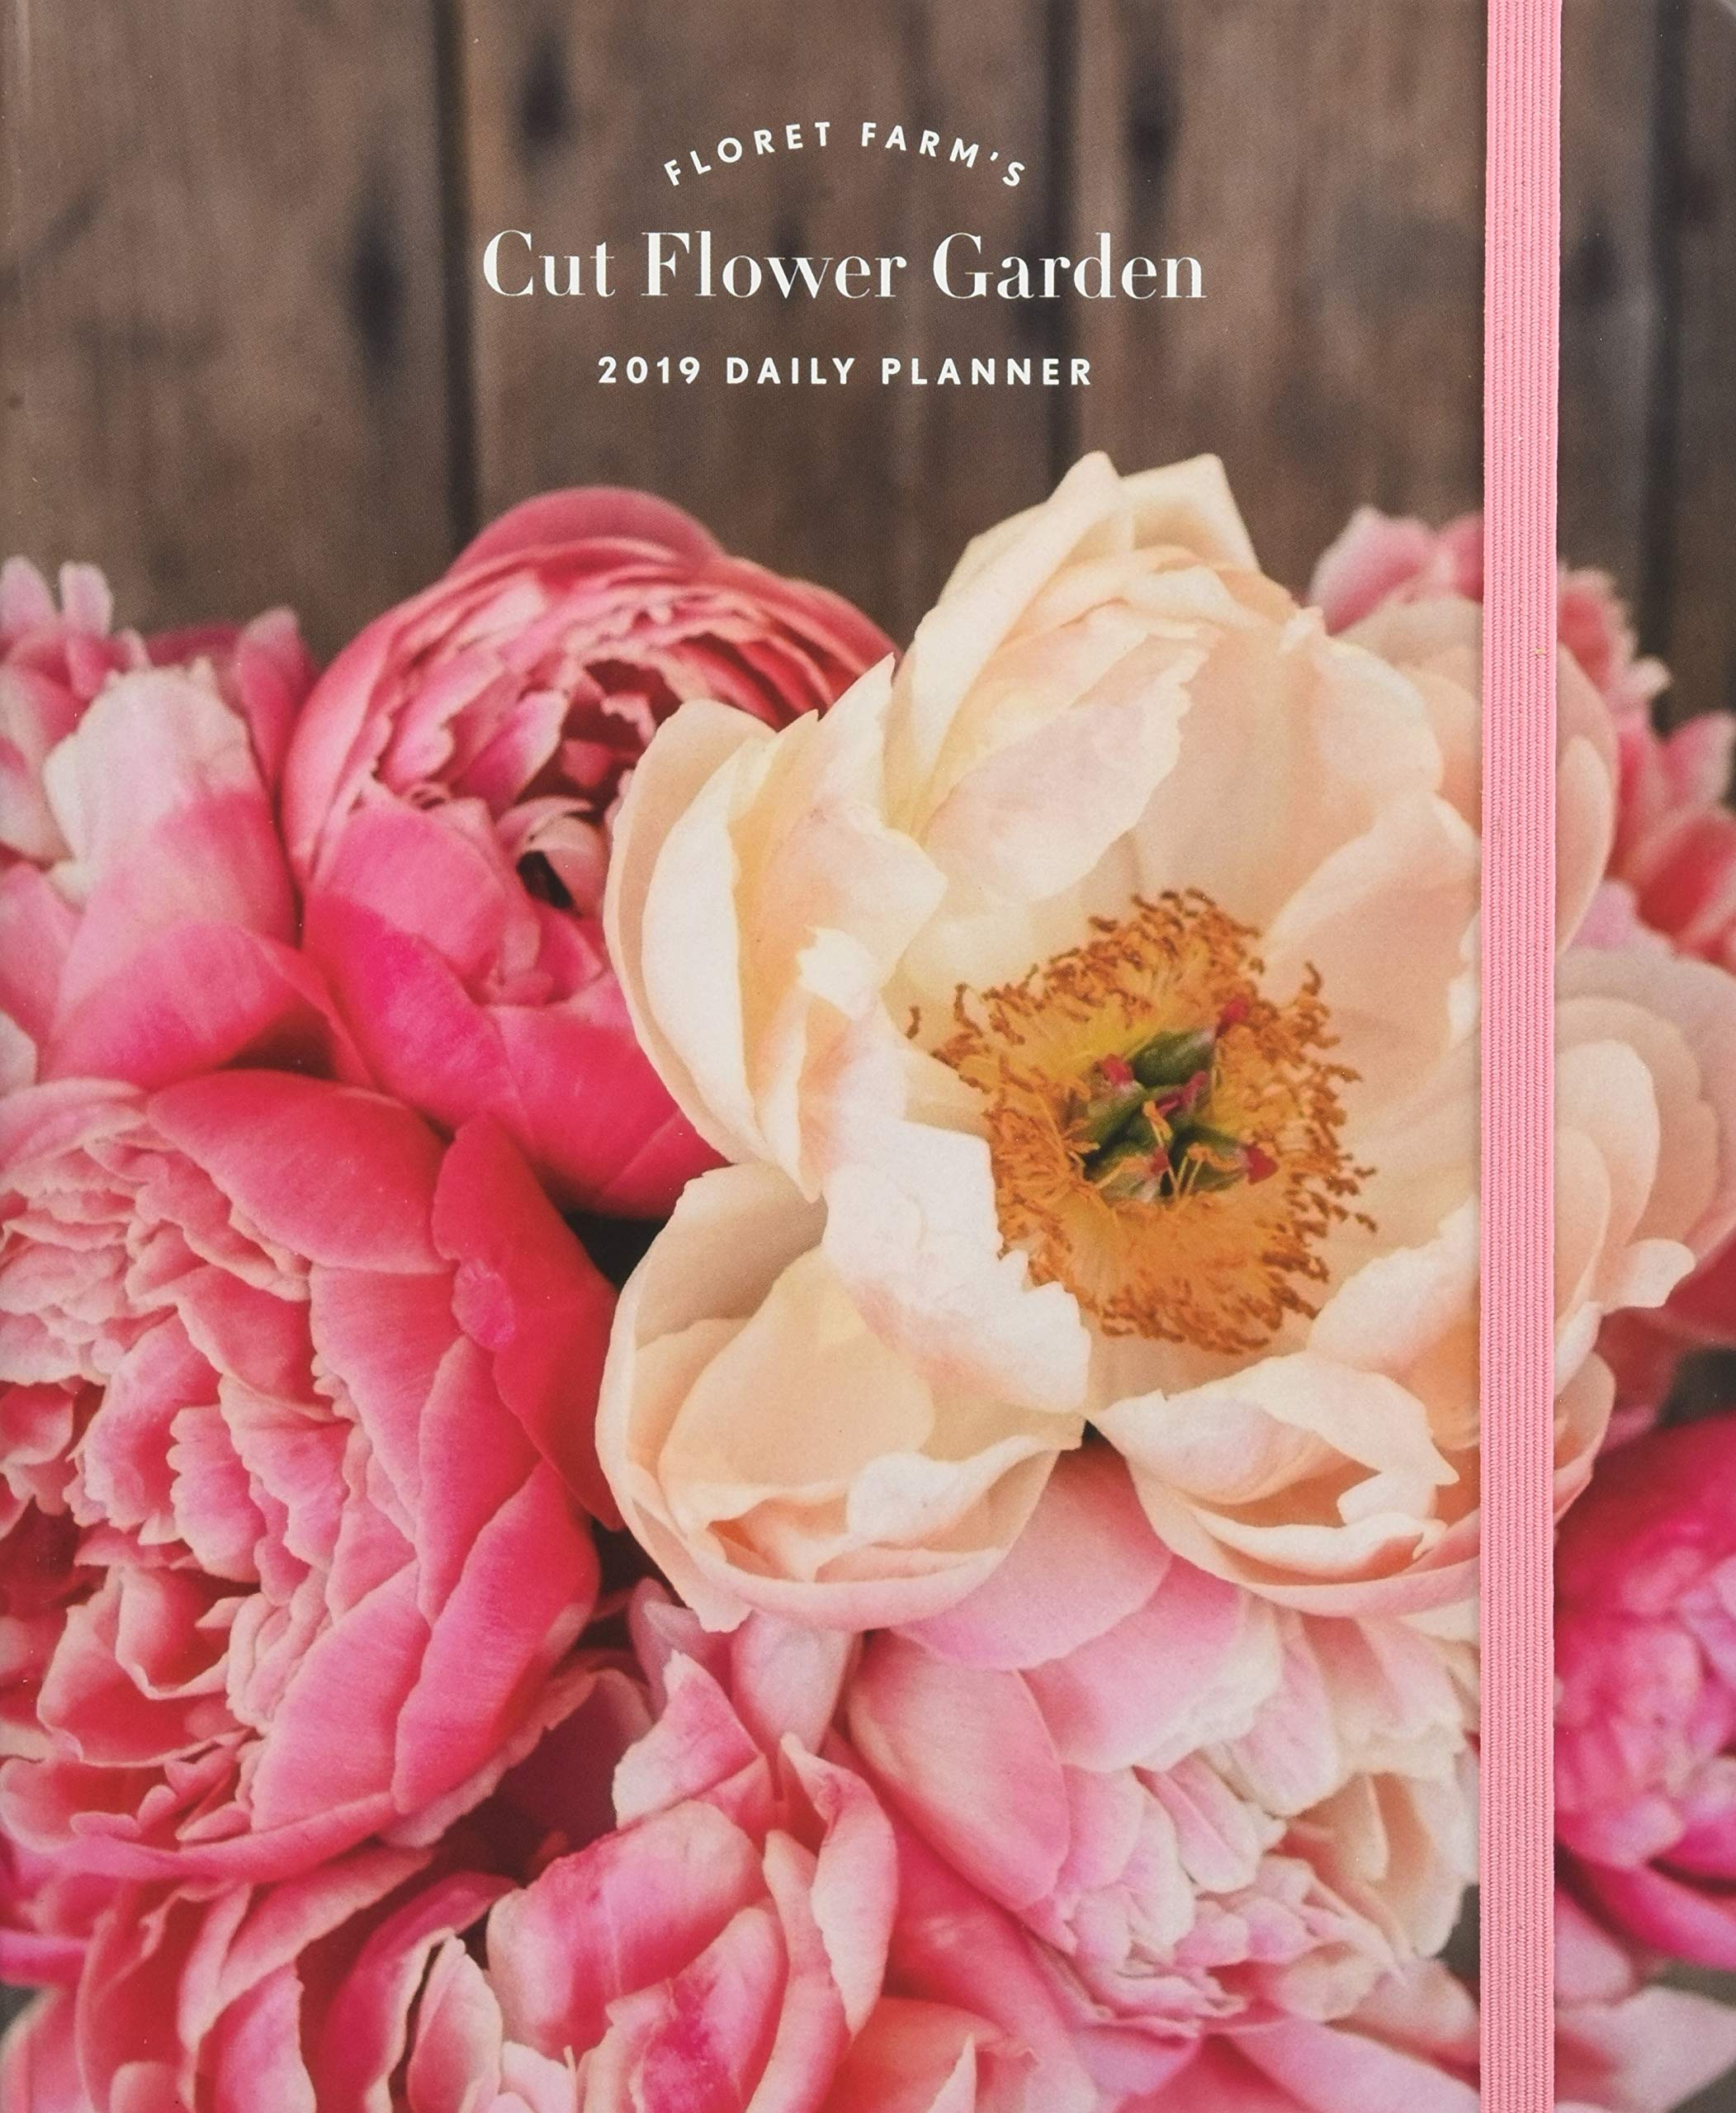 Amazon Floret Farms Cut Flower Garden 2019 Daily Planner